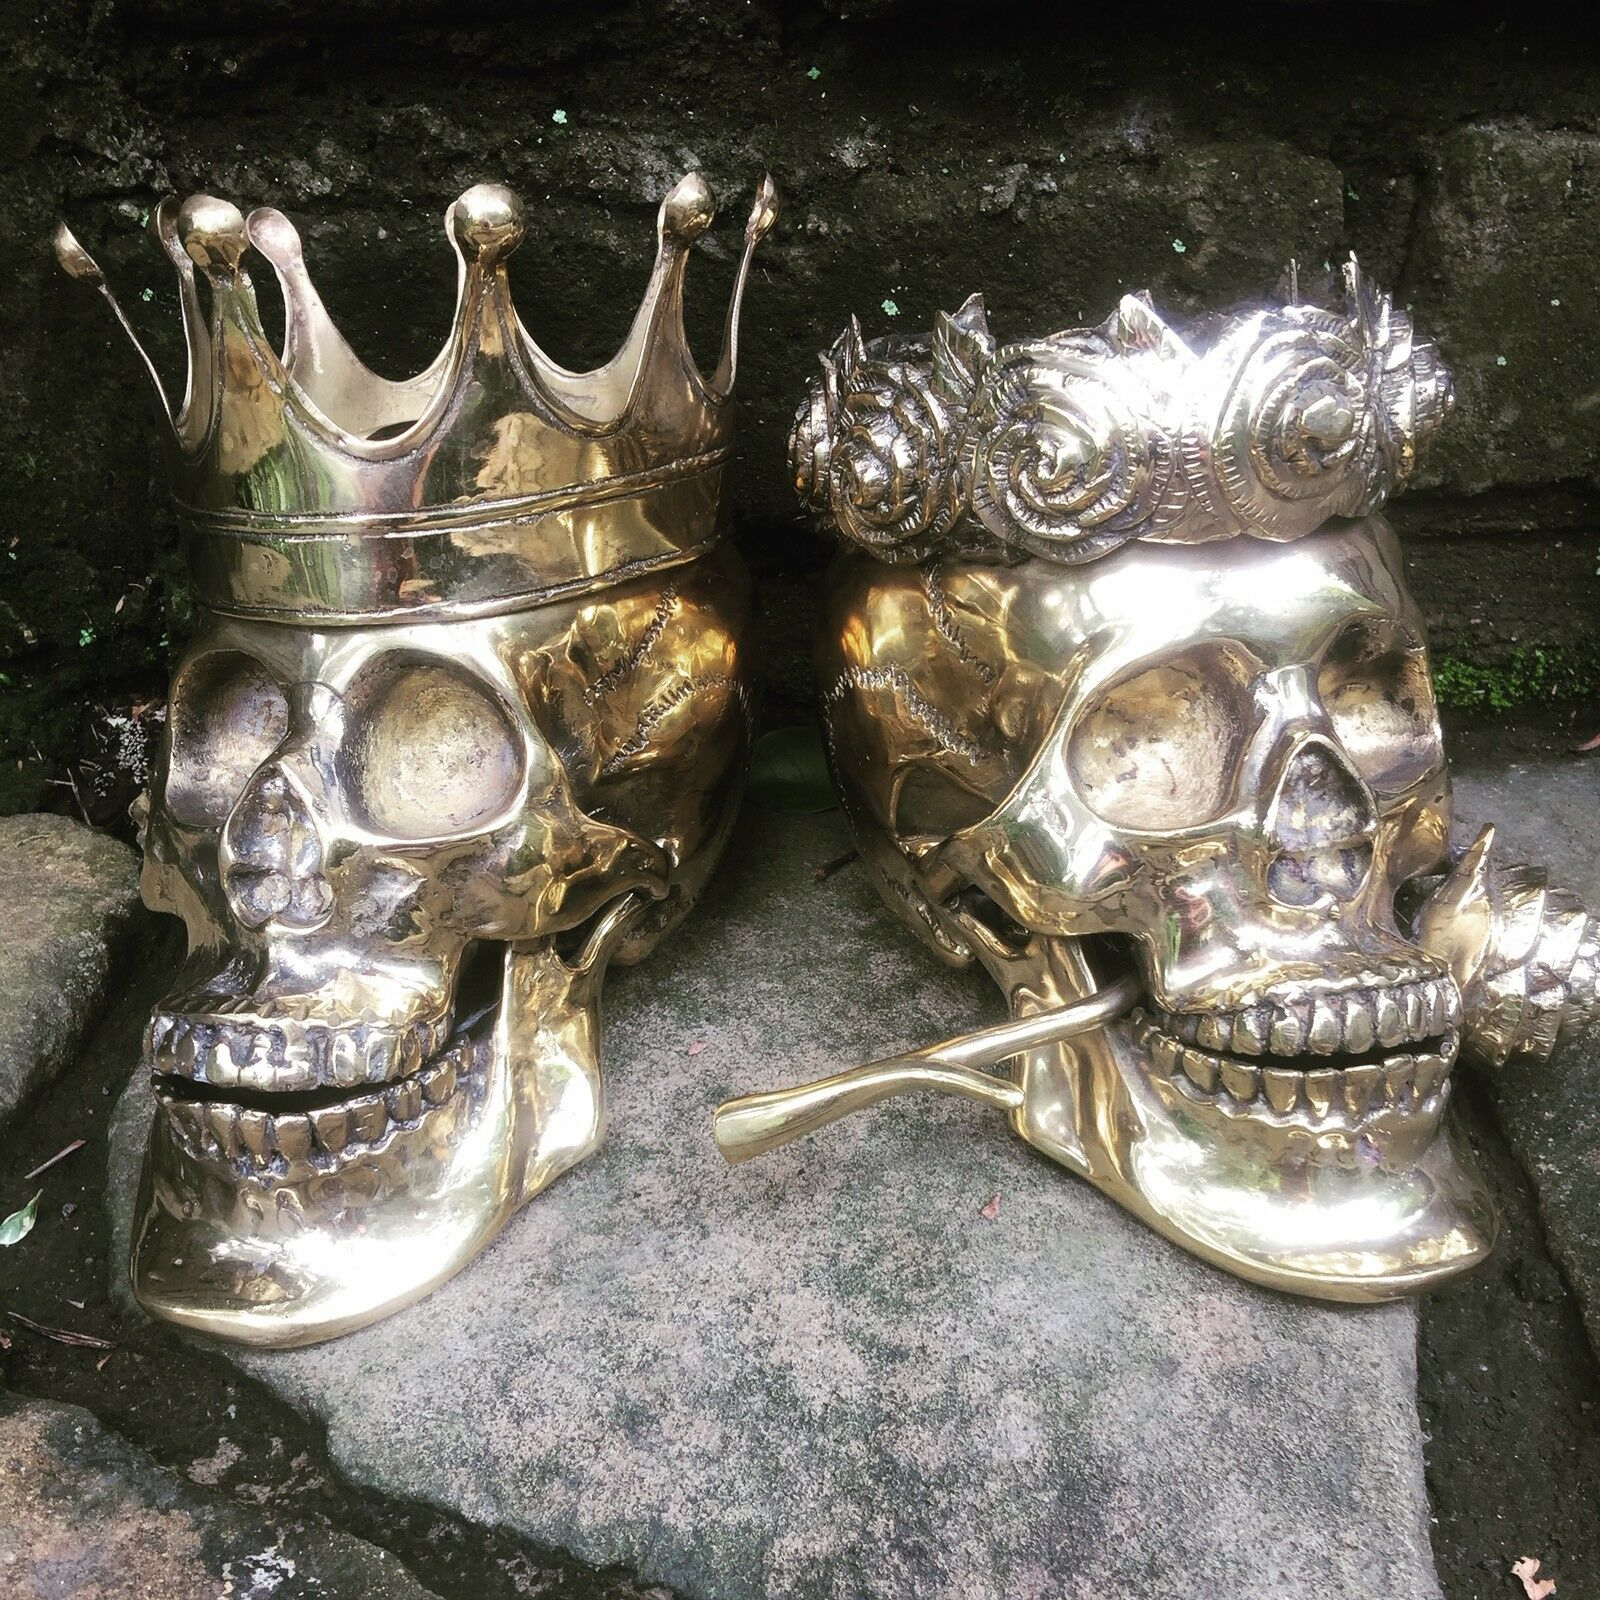 SET 2 NEW HAND CRAFTED BRASS BRASS BRASS METAL SKULL COLLECTABLES DAY DEAD KING QUEEN CROWN 18cd5c